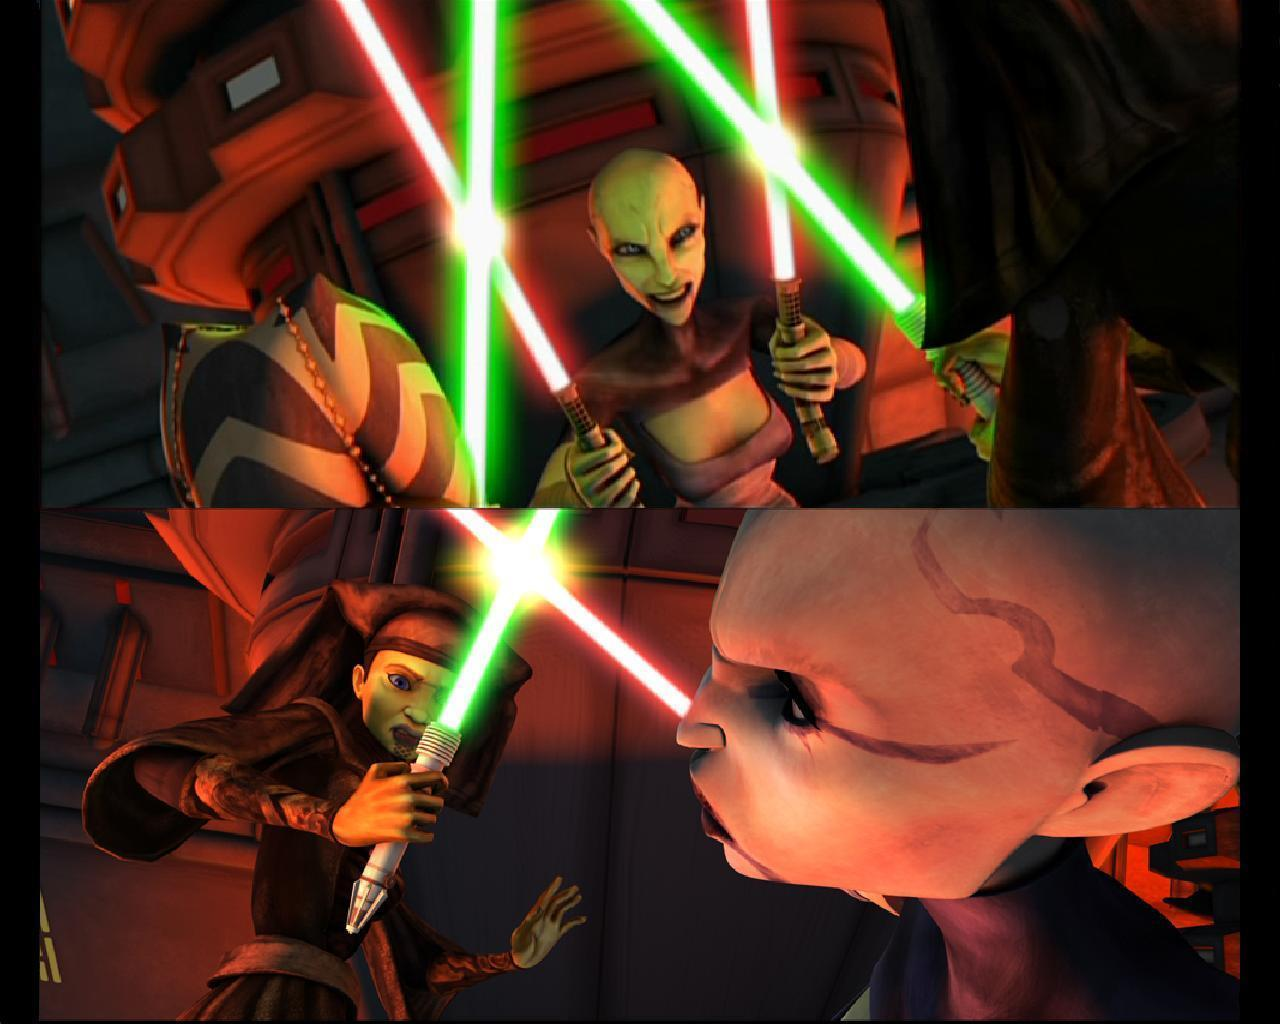 CLONE WARS episode 9 mantello of Darkness